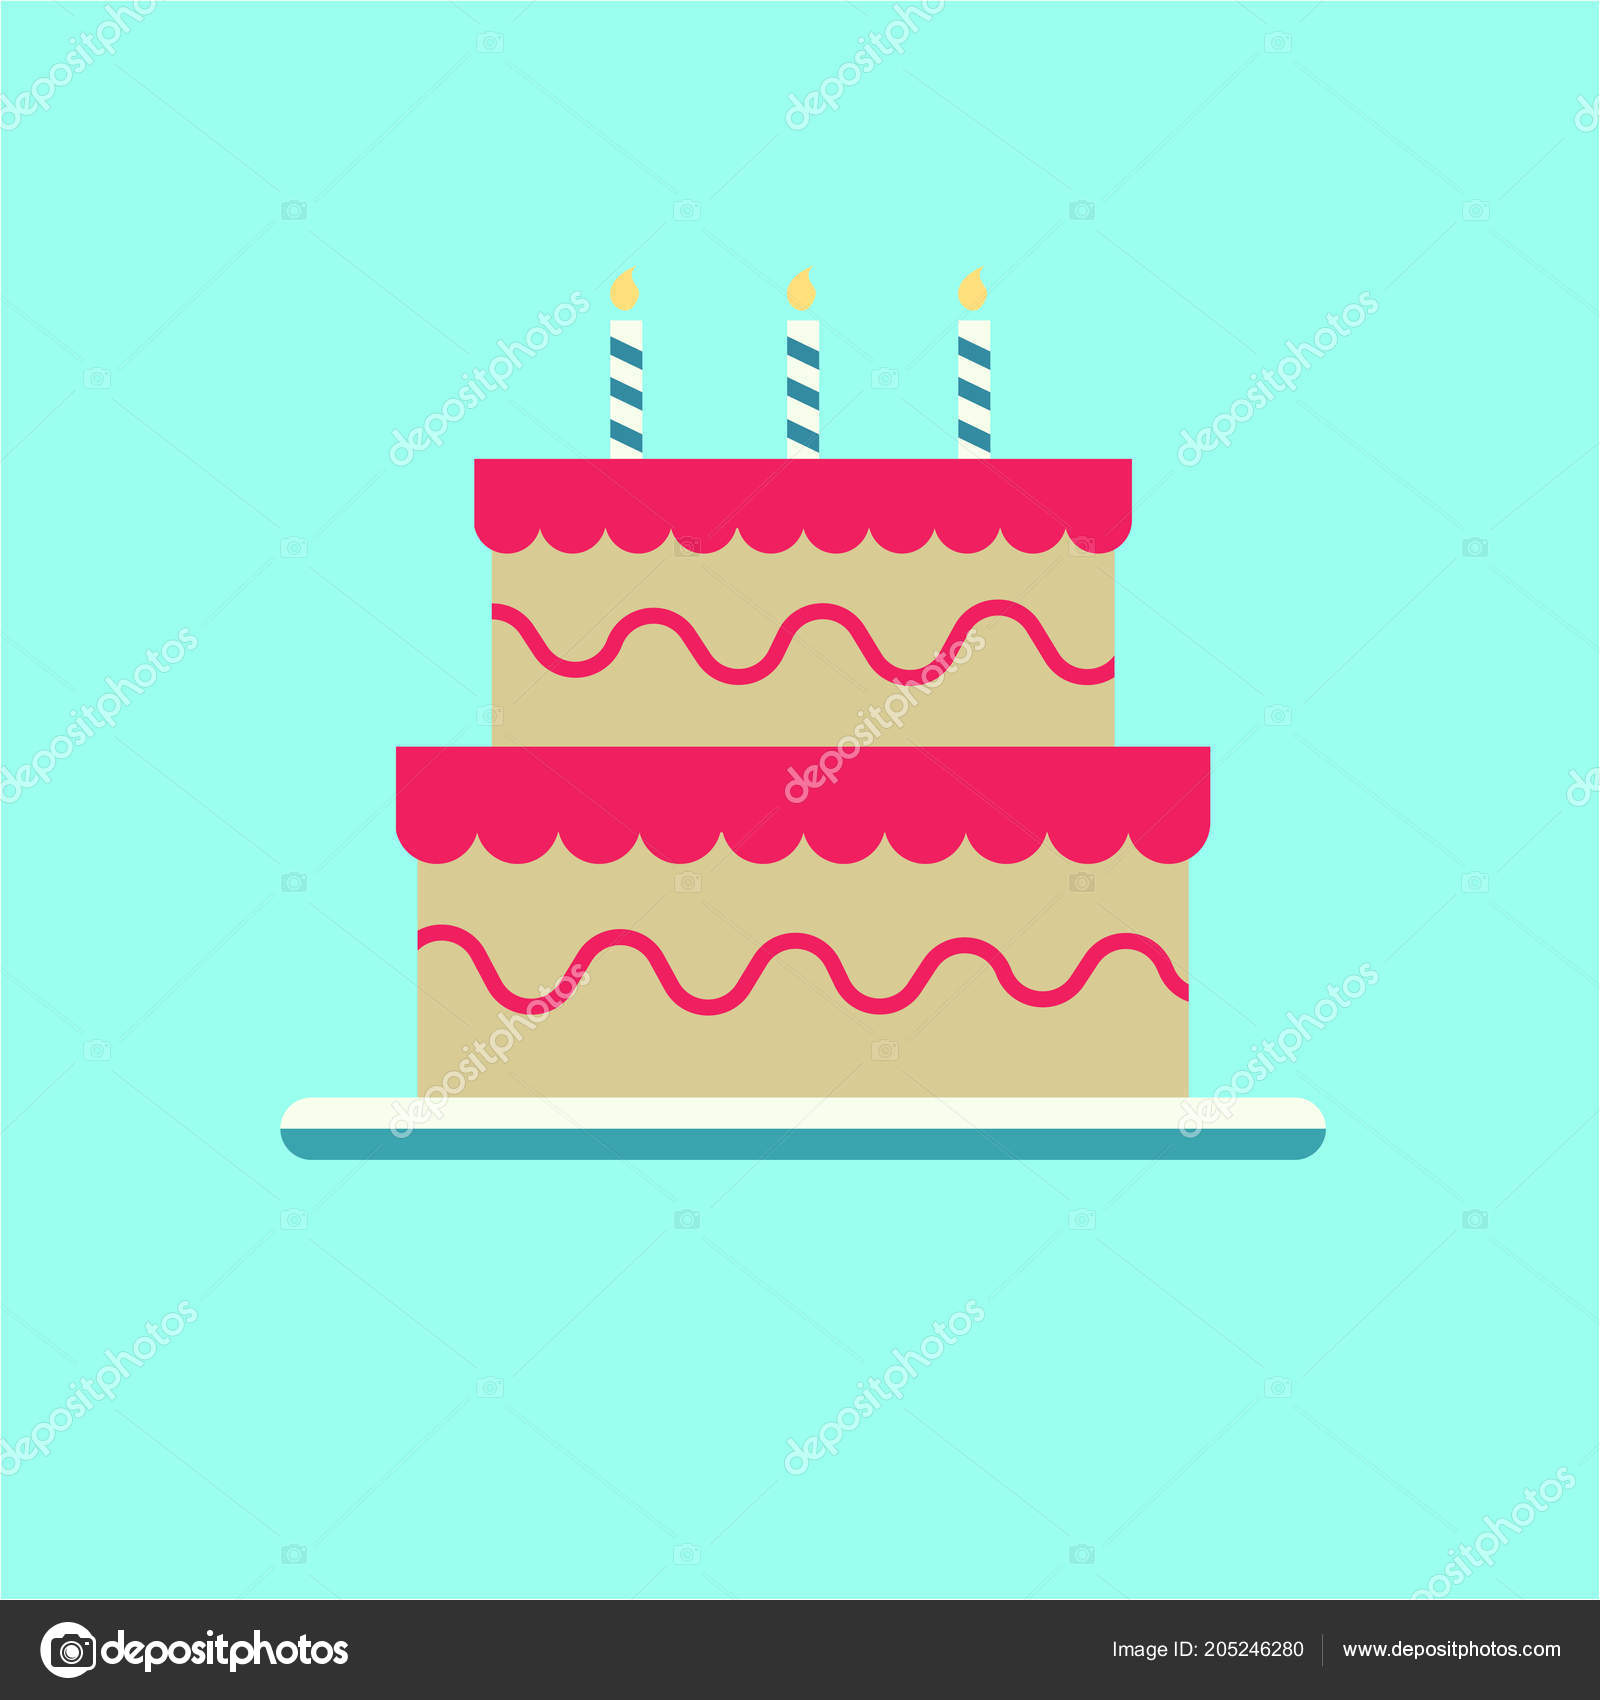 Cake Birthday Icon Flat Design Stock Vector C Akavector 205246280